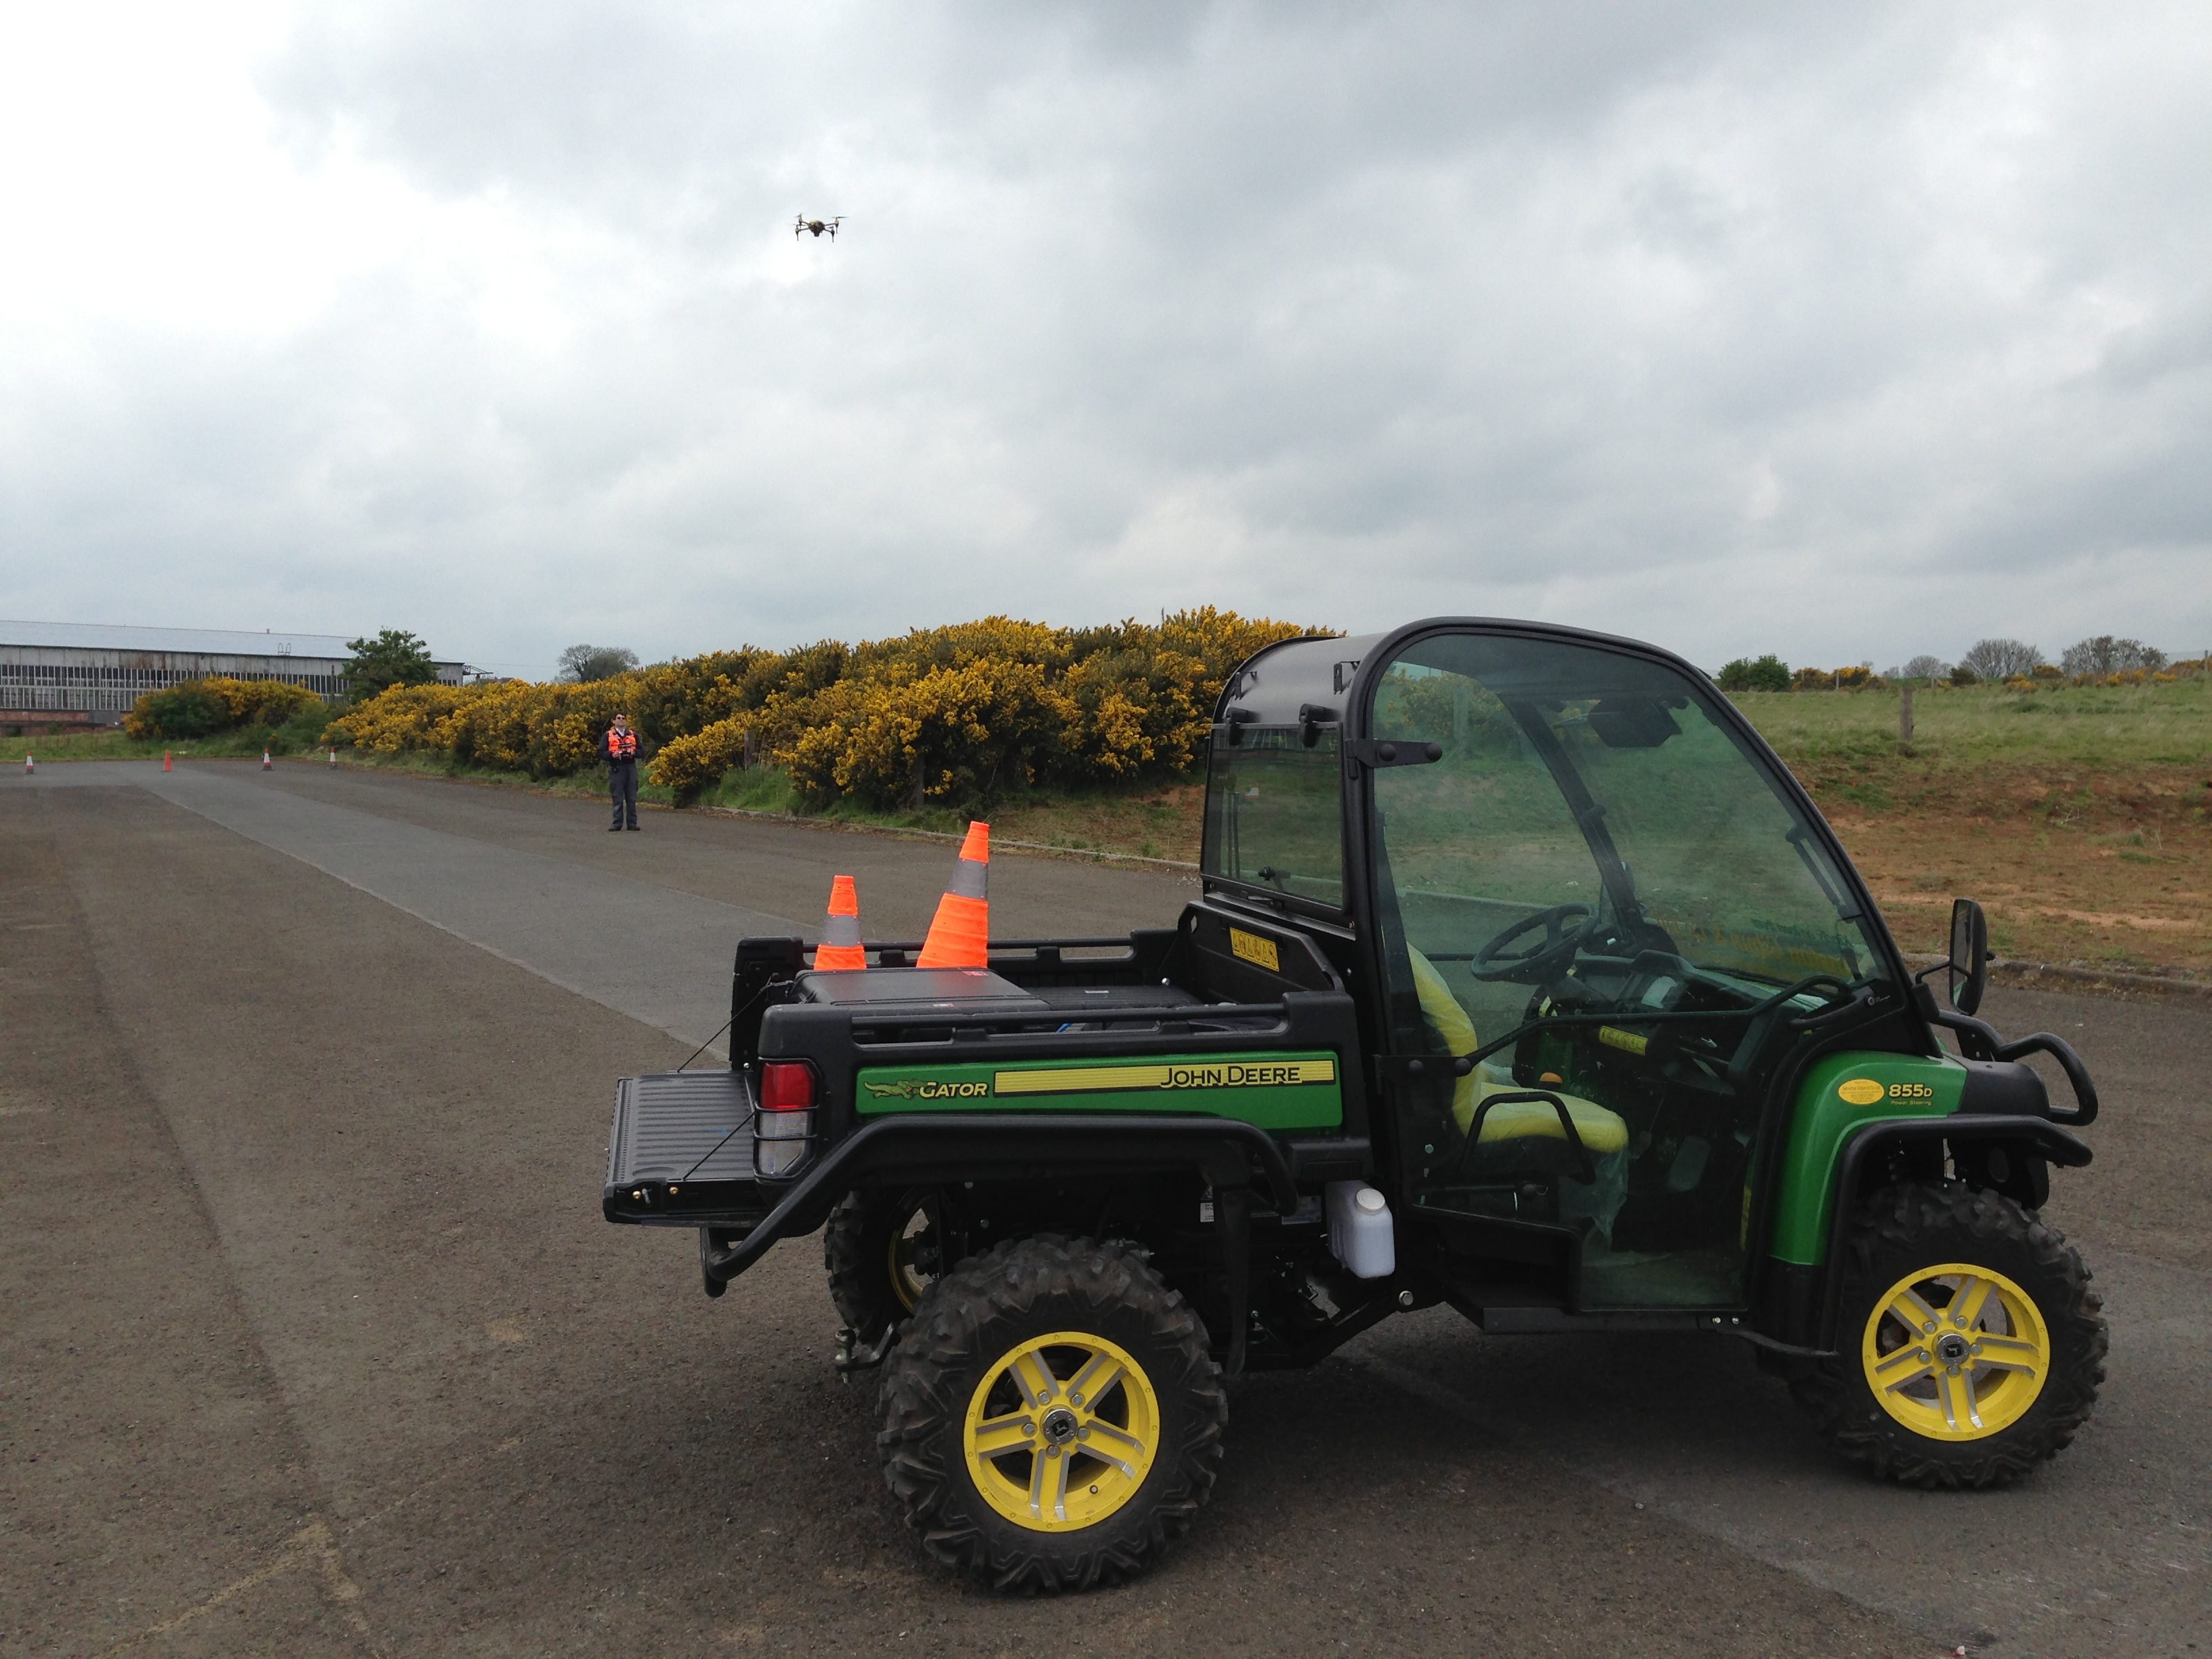 Our Gator transport around the site